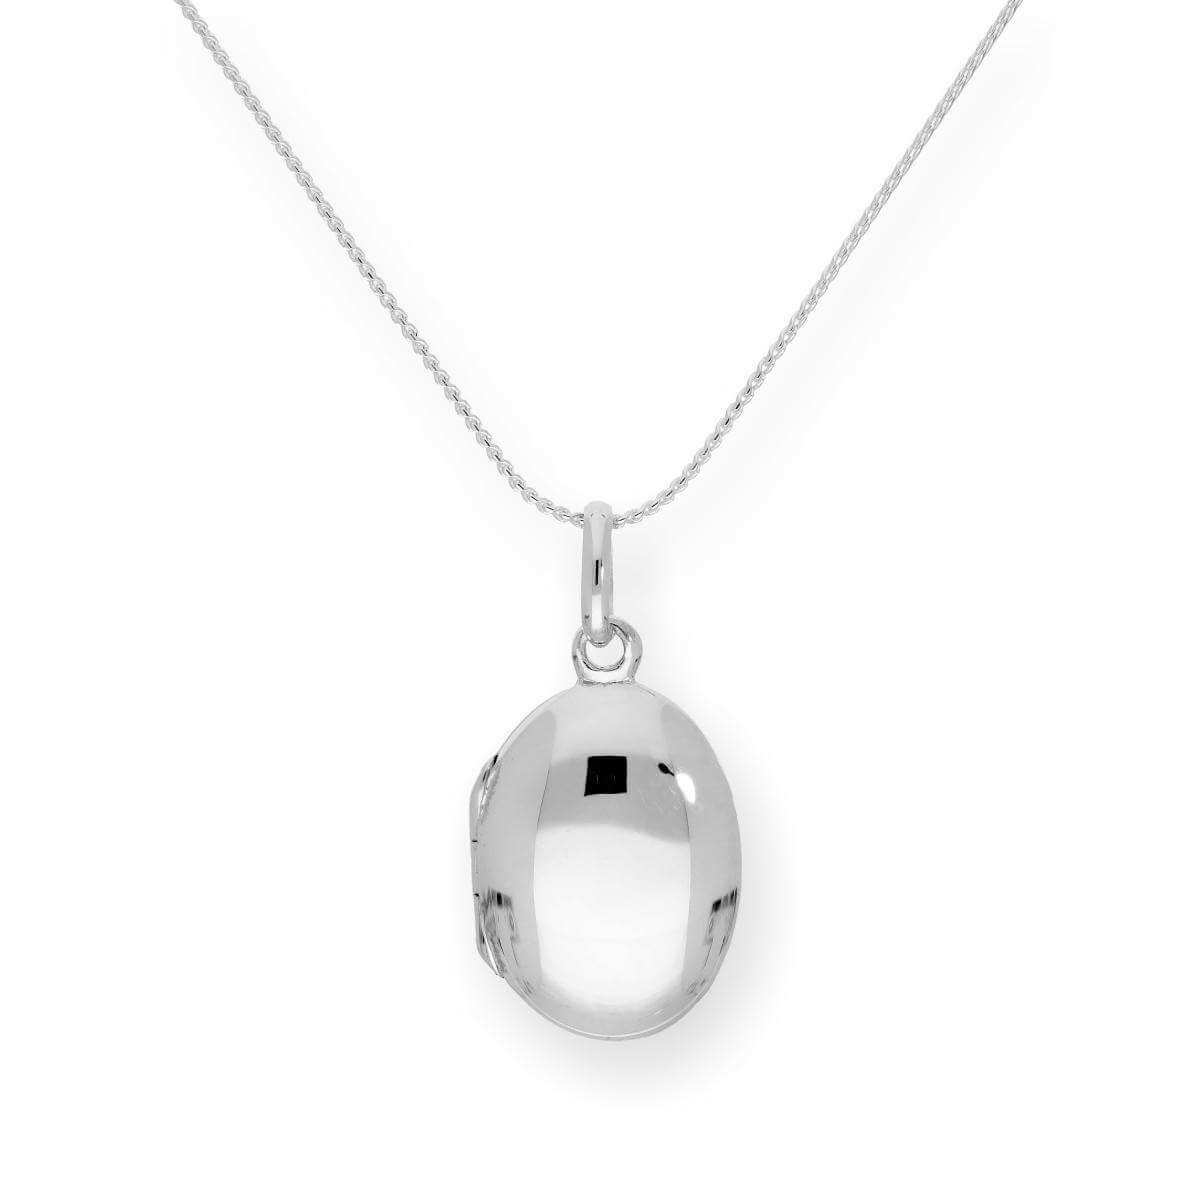 Sterling Silver Oval Engravable Locket on Chain 16 - 22 Inches